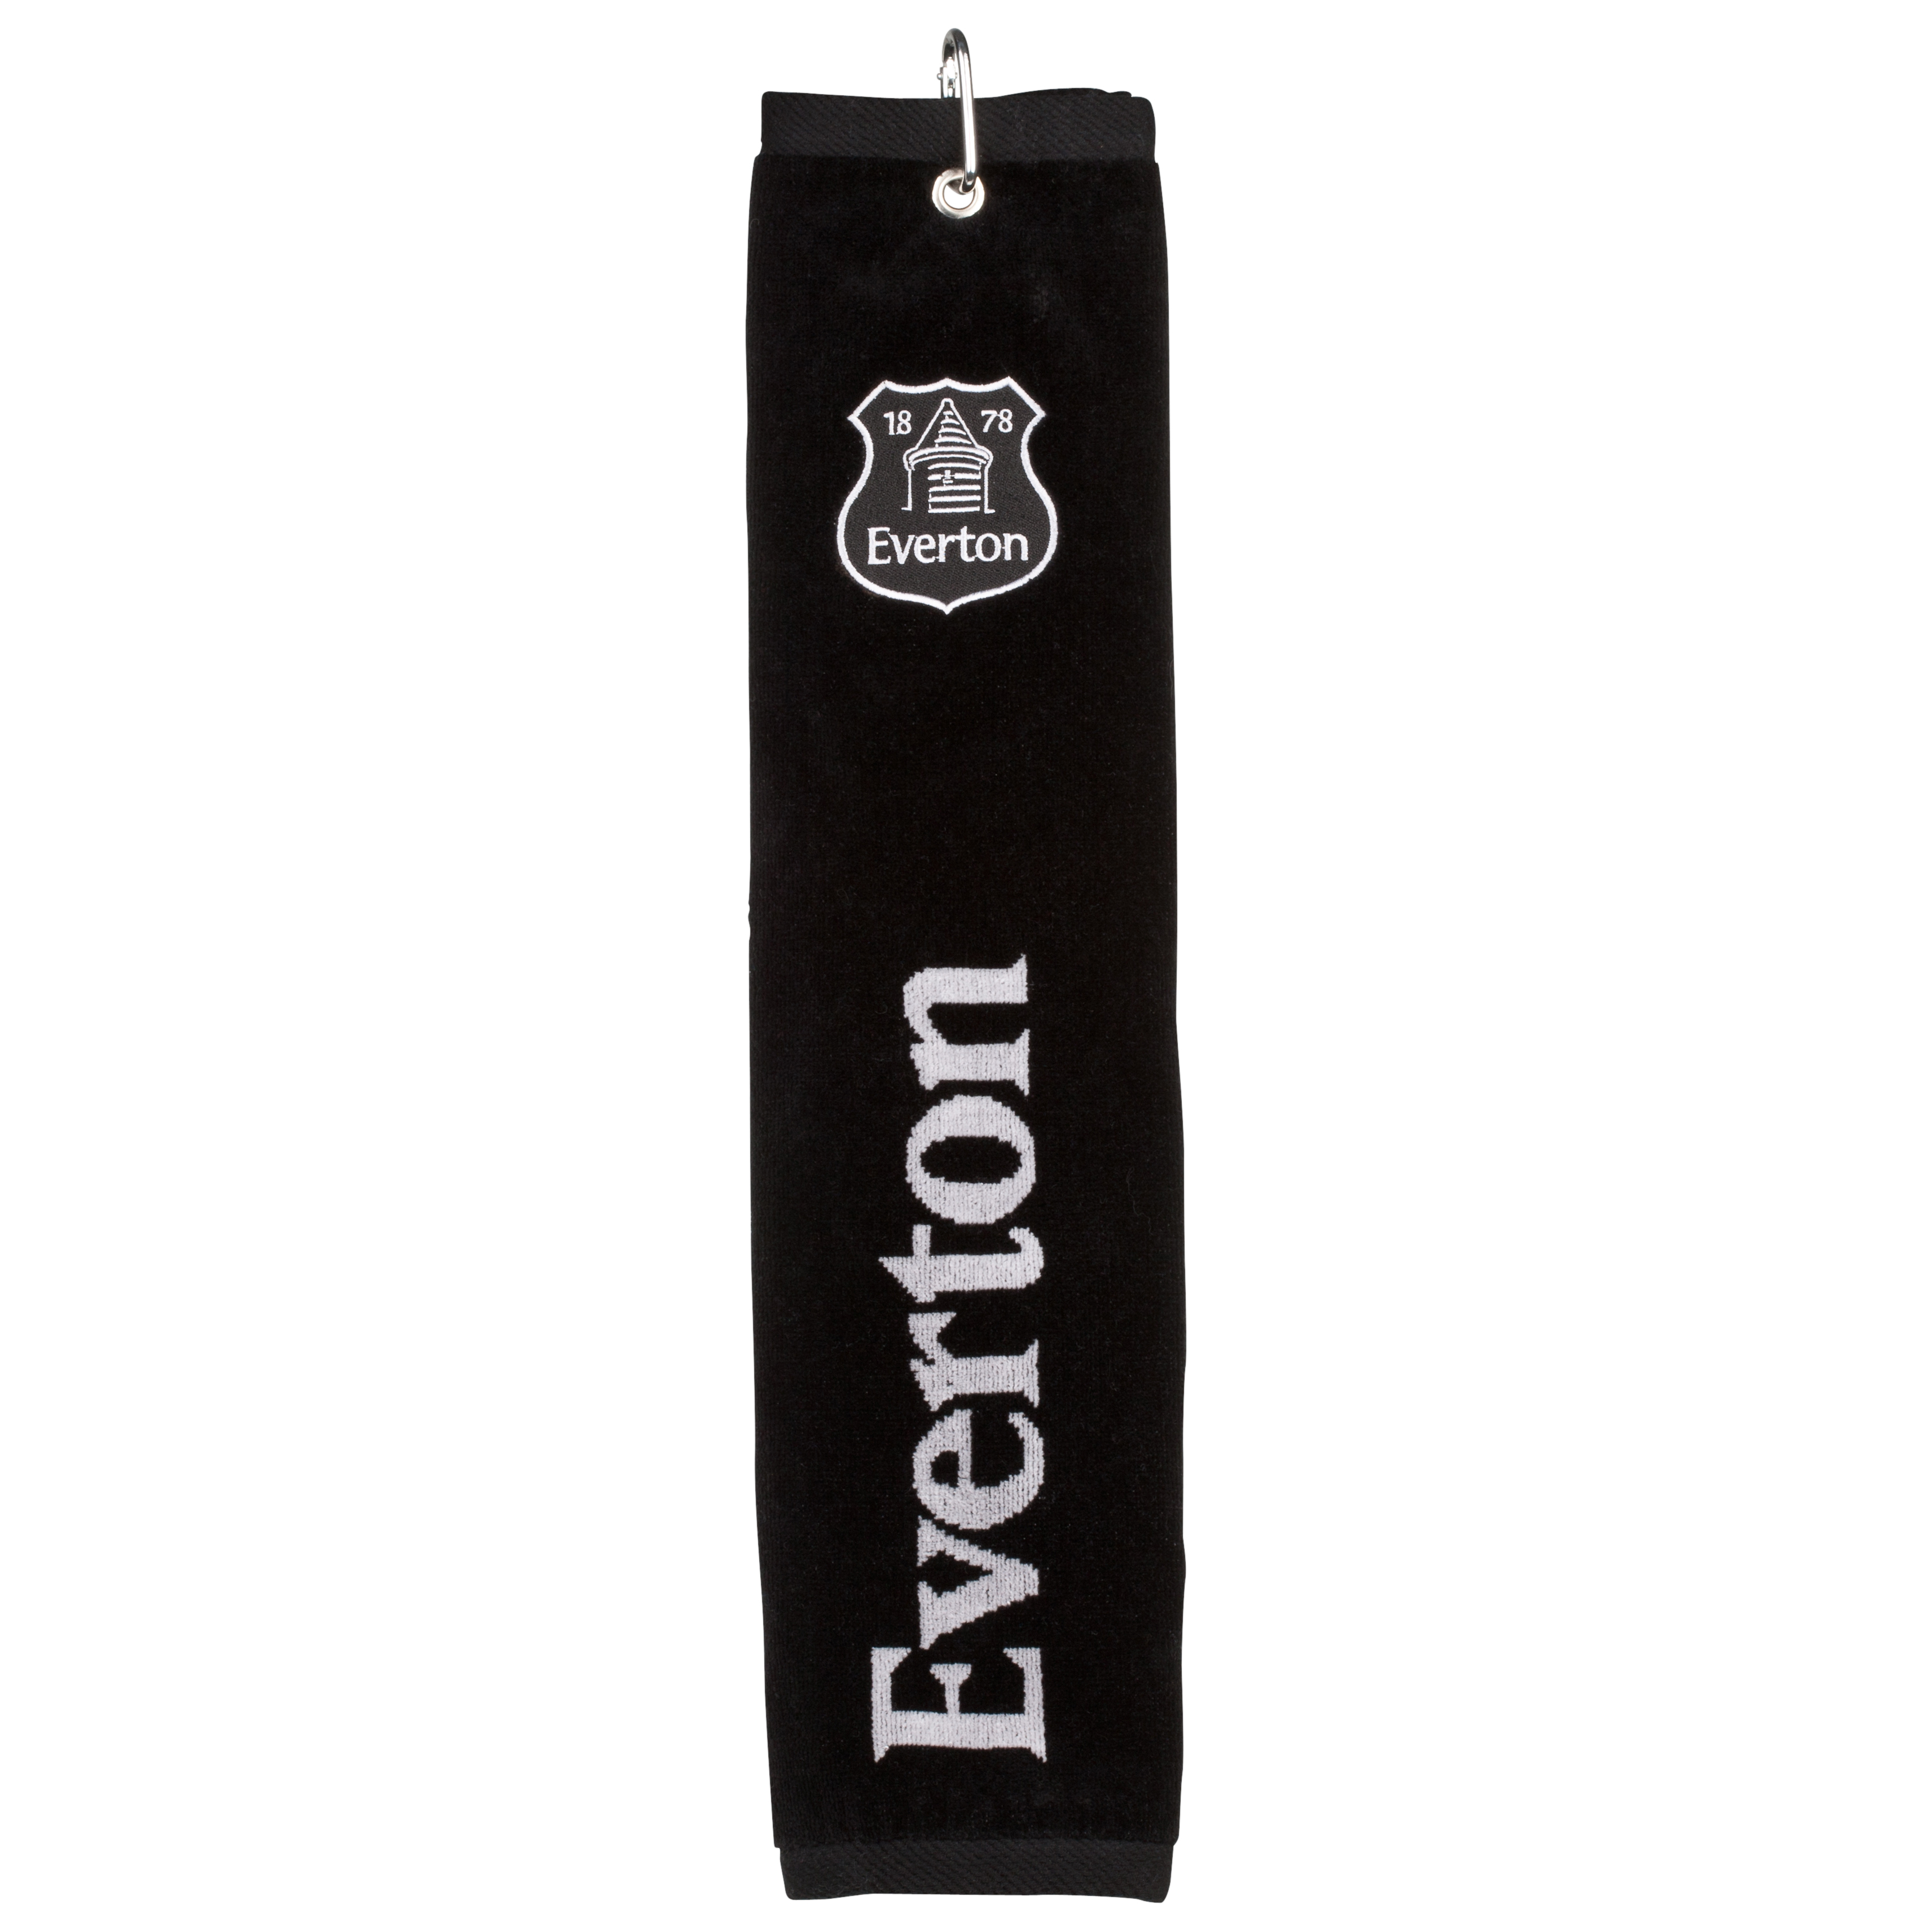 Everton Executive Golf Tri Fold Towel - Black/Silver